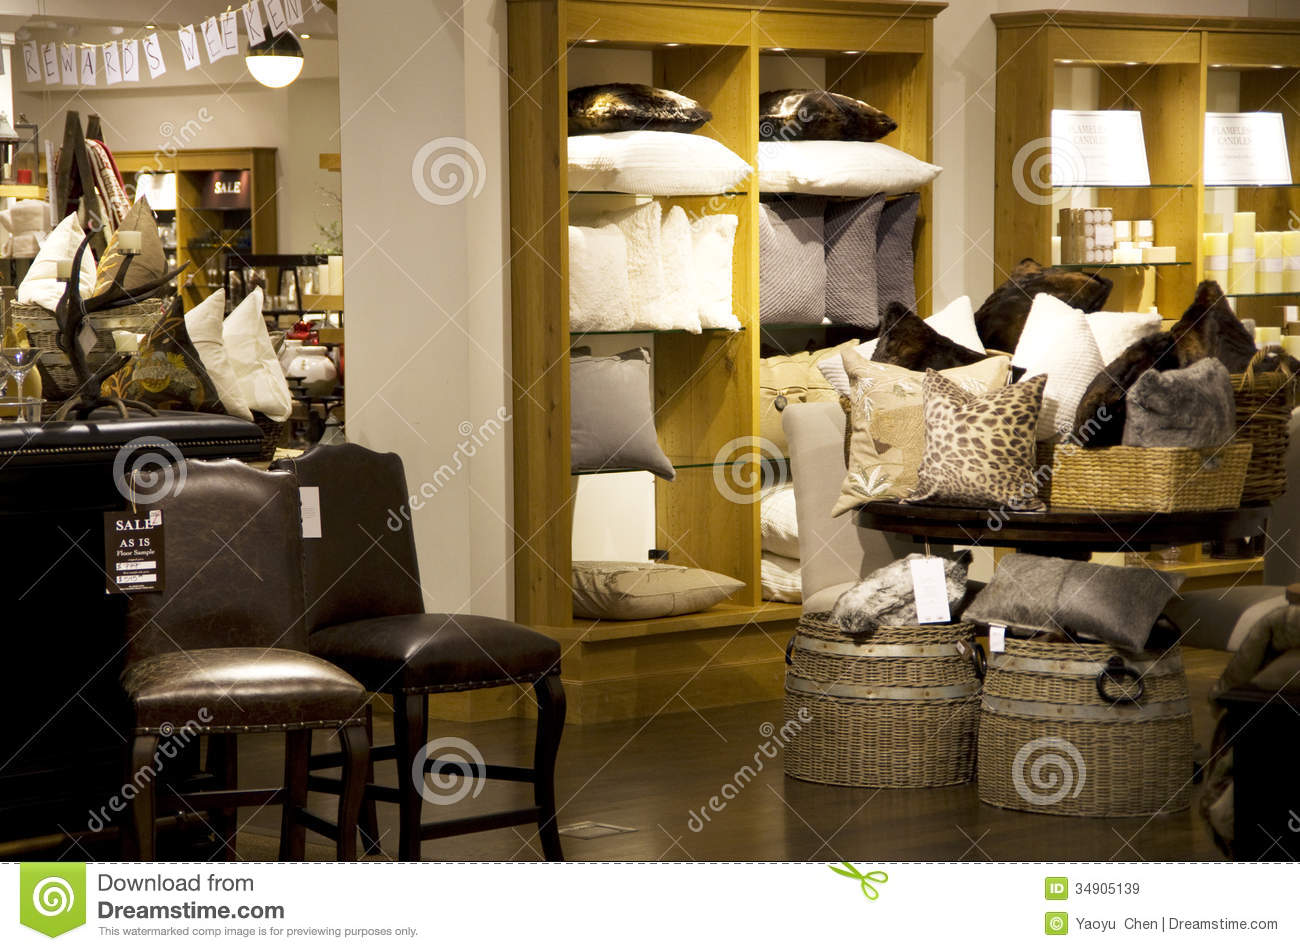 home goods store royalty free stock images image 34905139. Black Bedroom Furniture Sets. Home Design Ideas